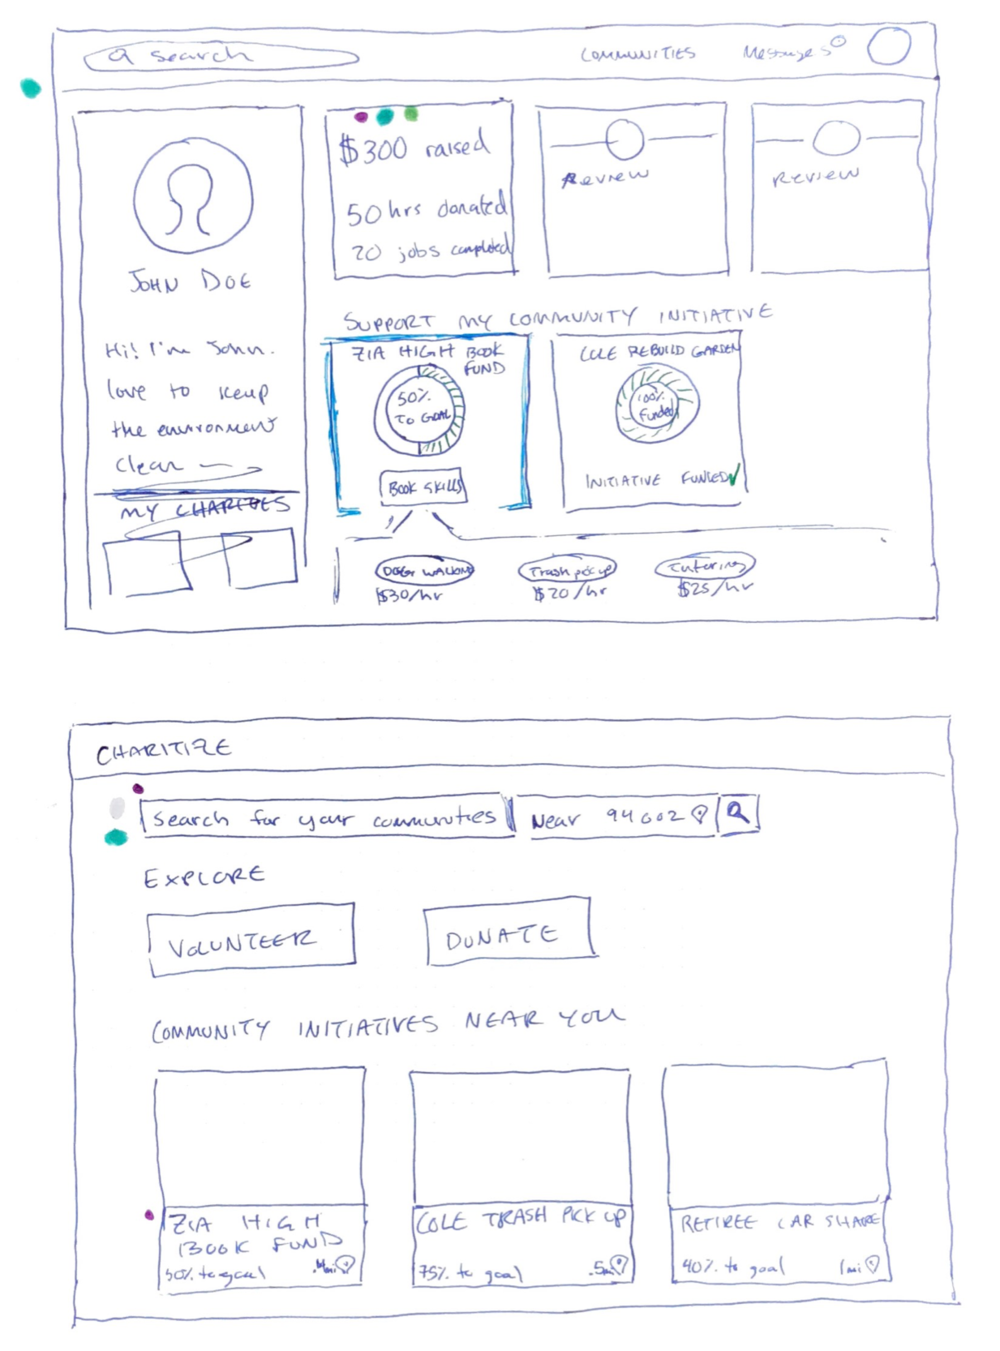 Some quick sketches of a volunteer profile and the landing page